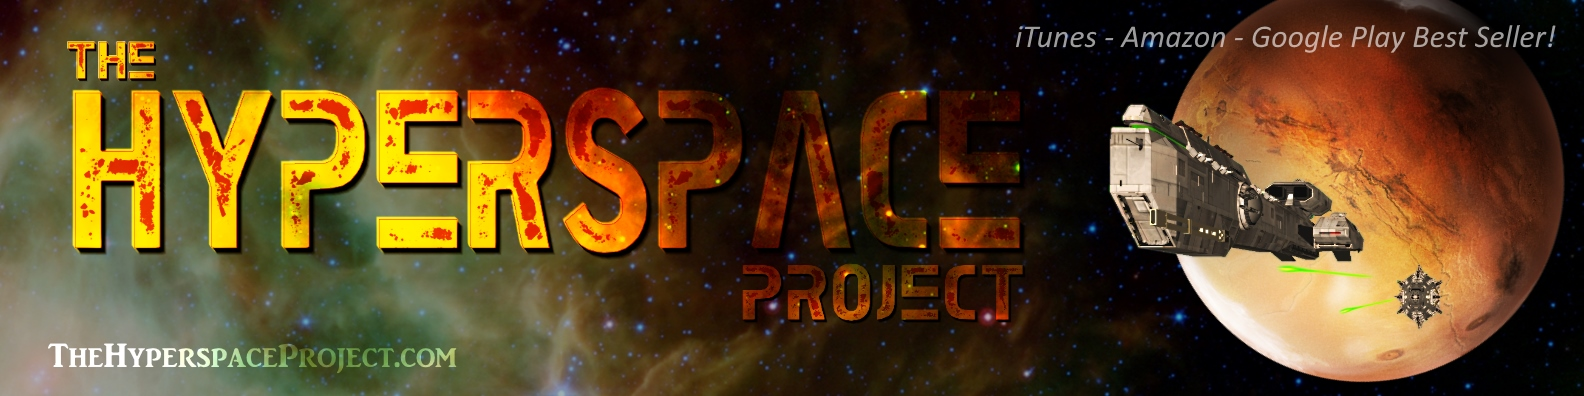 The Hyperspace Project